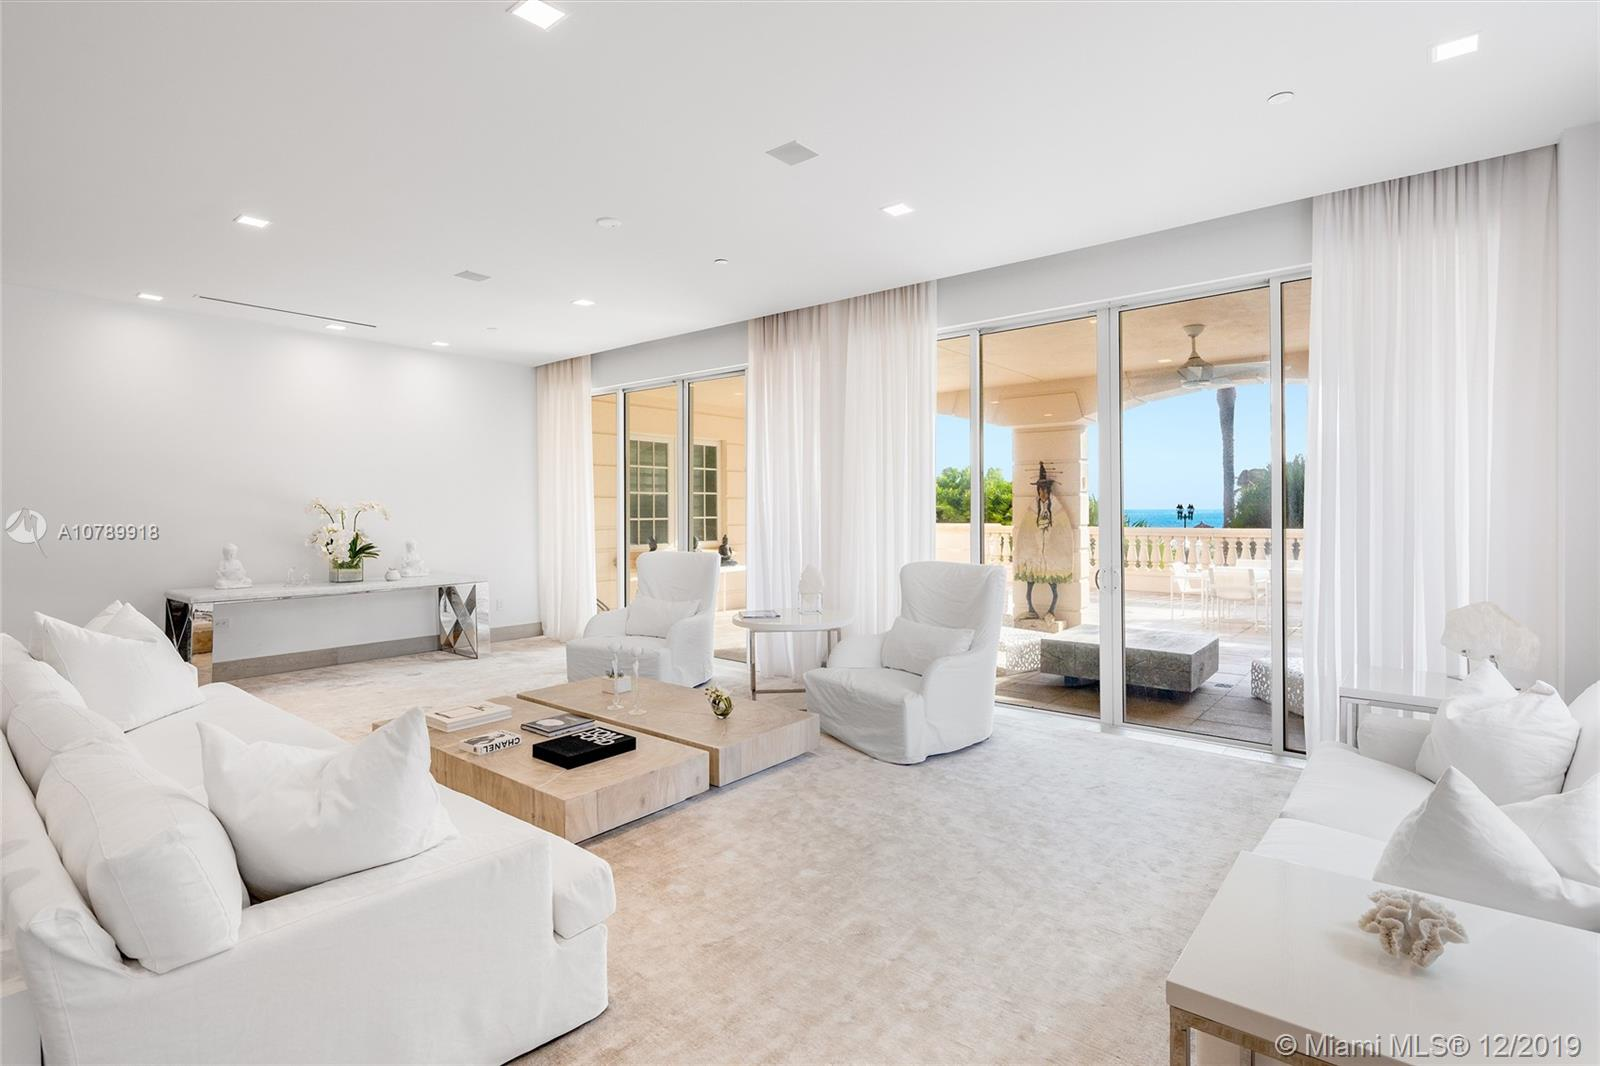 This amazing ground floor Oceanside unit on Fisher is truly luxury island living at its best. The professionally designed residence features exquisite marble & wood floors throughout, approx. 4,644 SF of spacious open layout w/seamless family/media & dining area, a pool room & formal living room w/direct access to an expansive full wraparound terrace w/beach & ocean views. The sleek gourmet kitchen sports a large granite center island w/extension for eat-in seating, Ornare cabinetry, granite counter tops & backsplash, top-of-the-line appliances. The private principal suite features voluminous separate dual walk-in closets, views to the ocean & a stunning marble bath w/oval soaking tub, walk-in marble/glass rainshower w/steam. In addition, there are 3 spacious bedrooms w/en-suite baths.